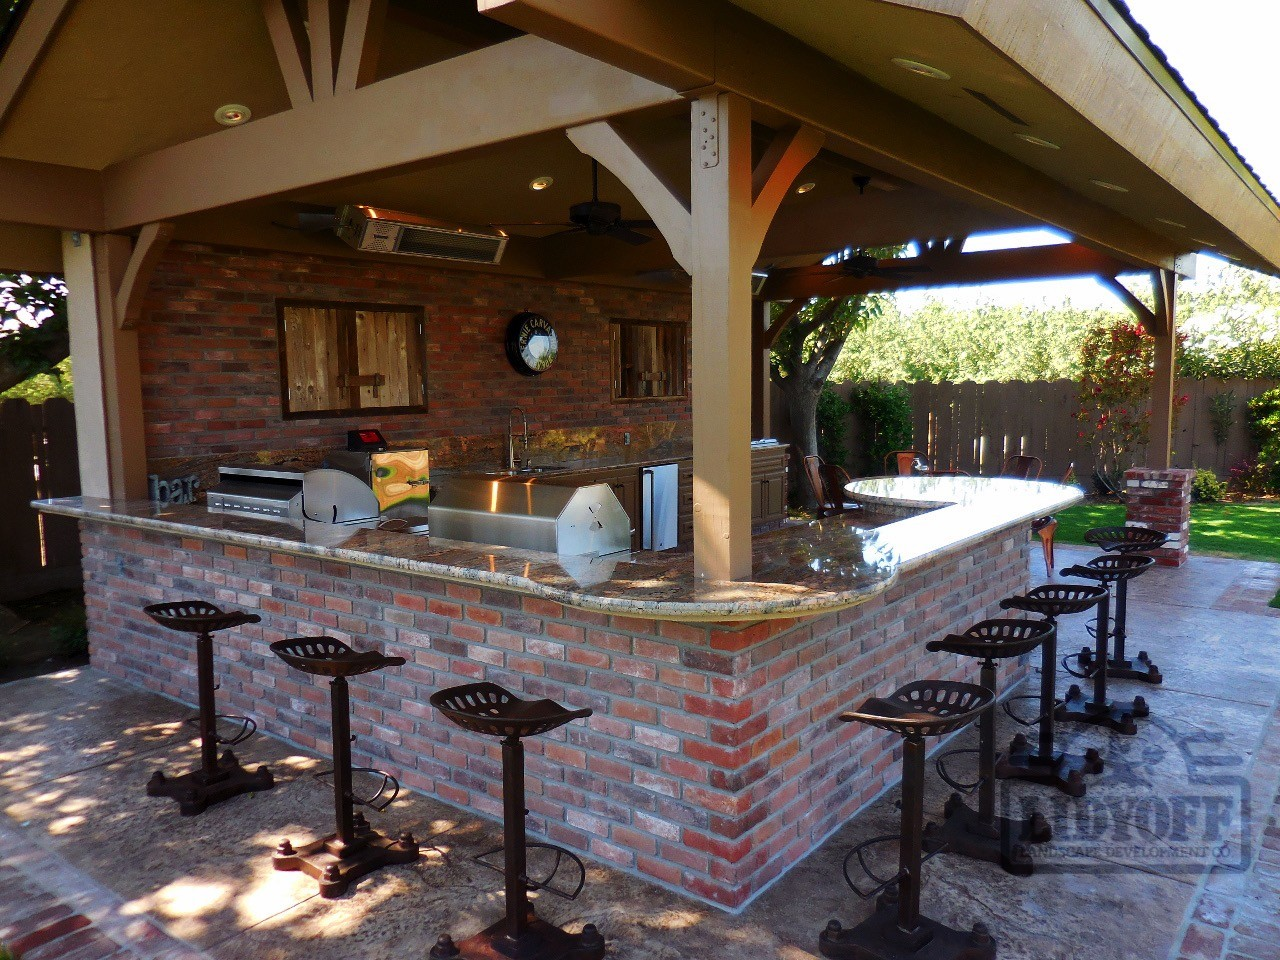 Outdoor Kitchens | Lidyoff Landscaping Development Co. on Patio Kitchen id=31517